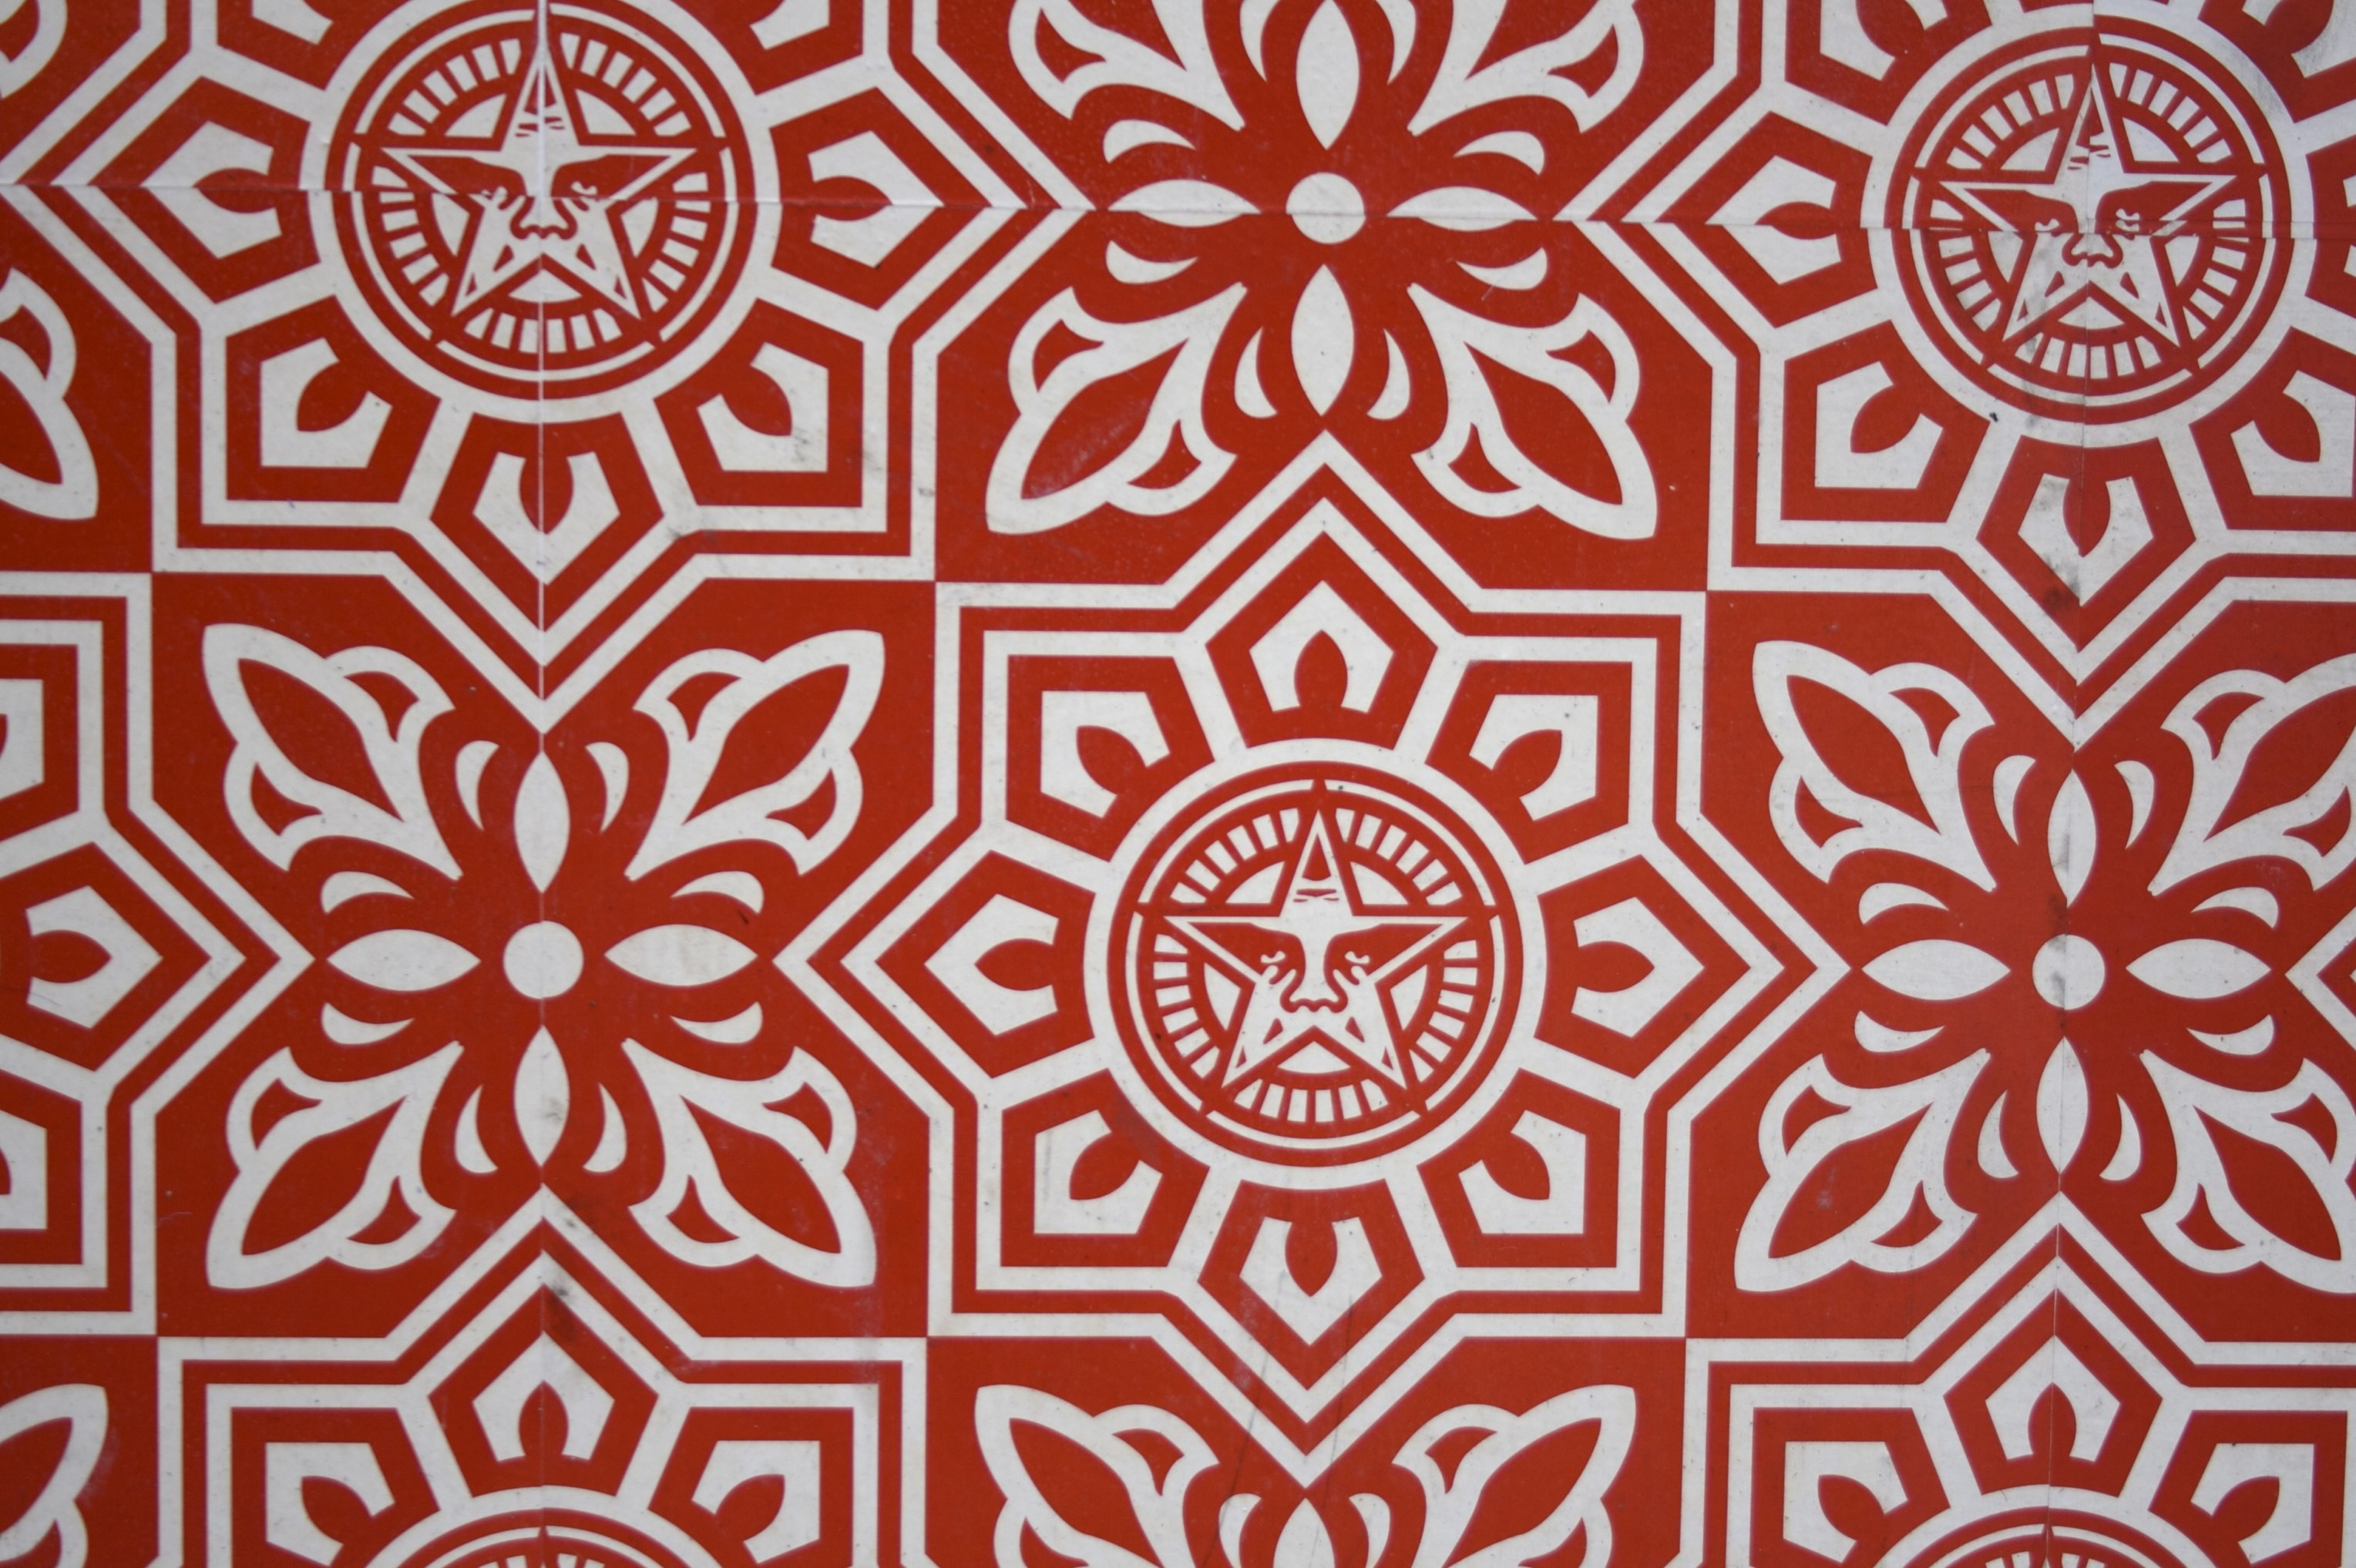 Obey Wallpapers For Iphone Obey Wallpaper Related